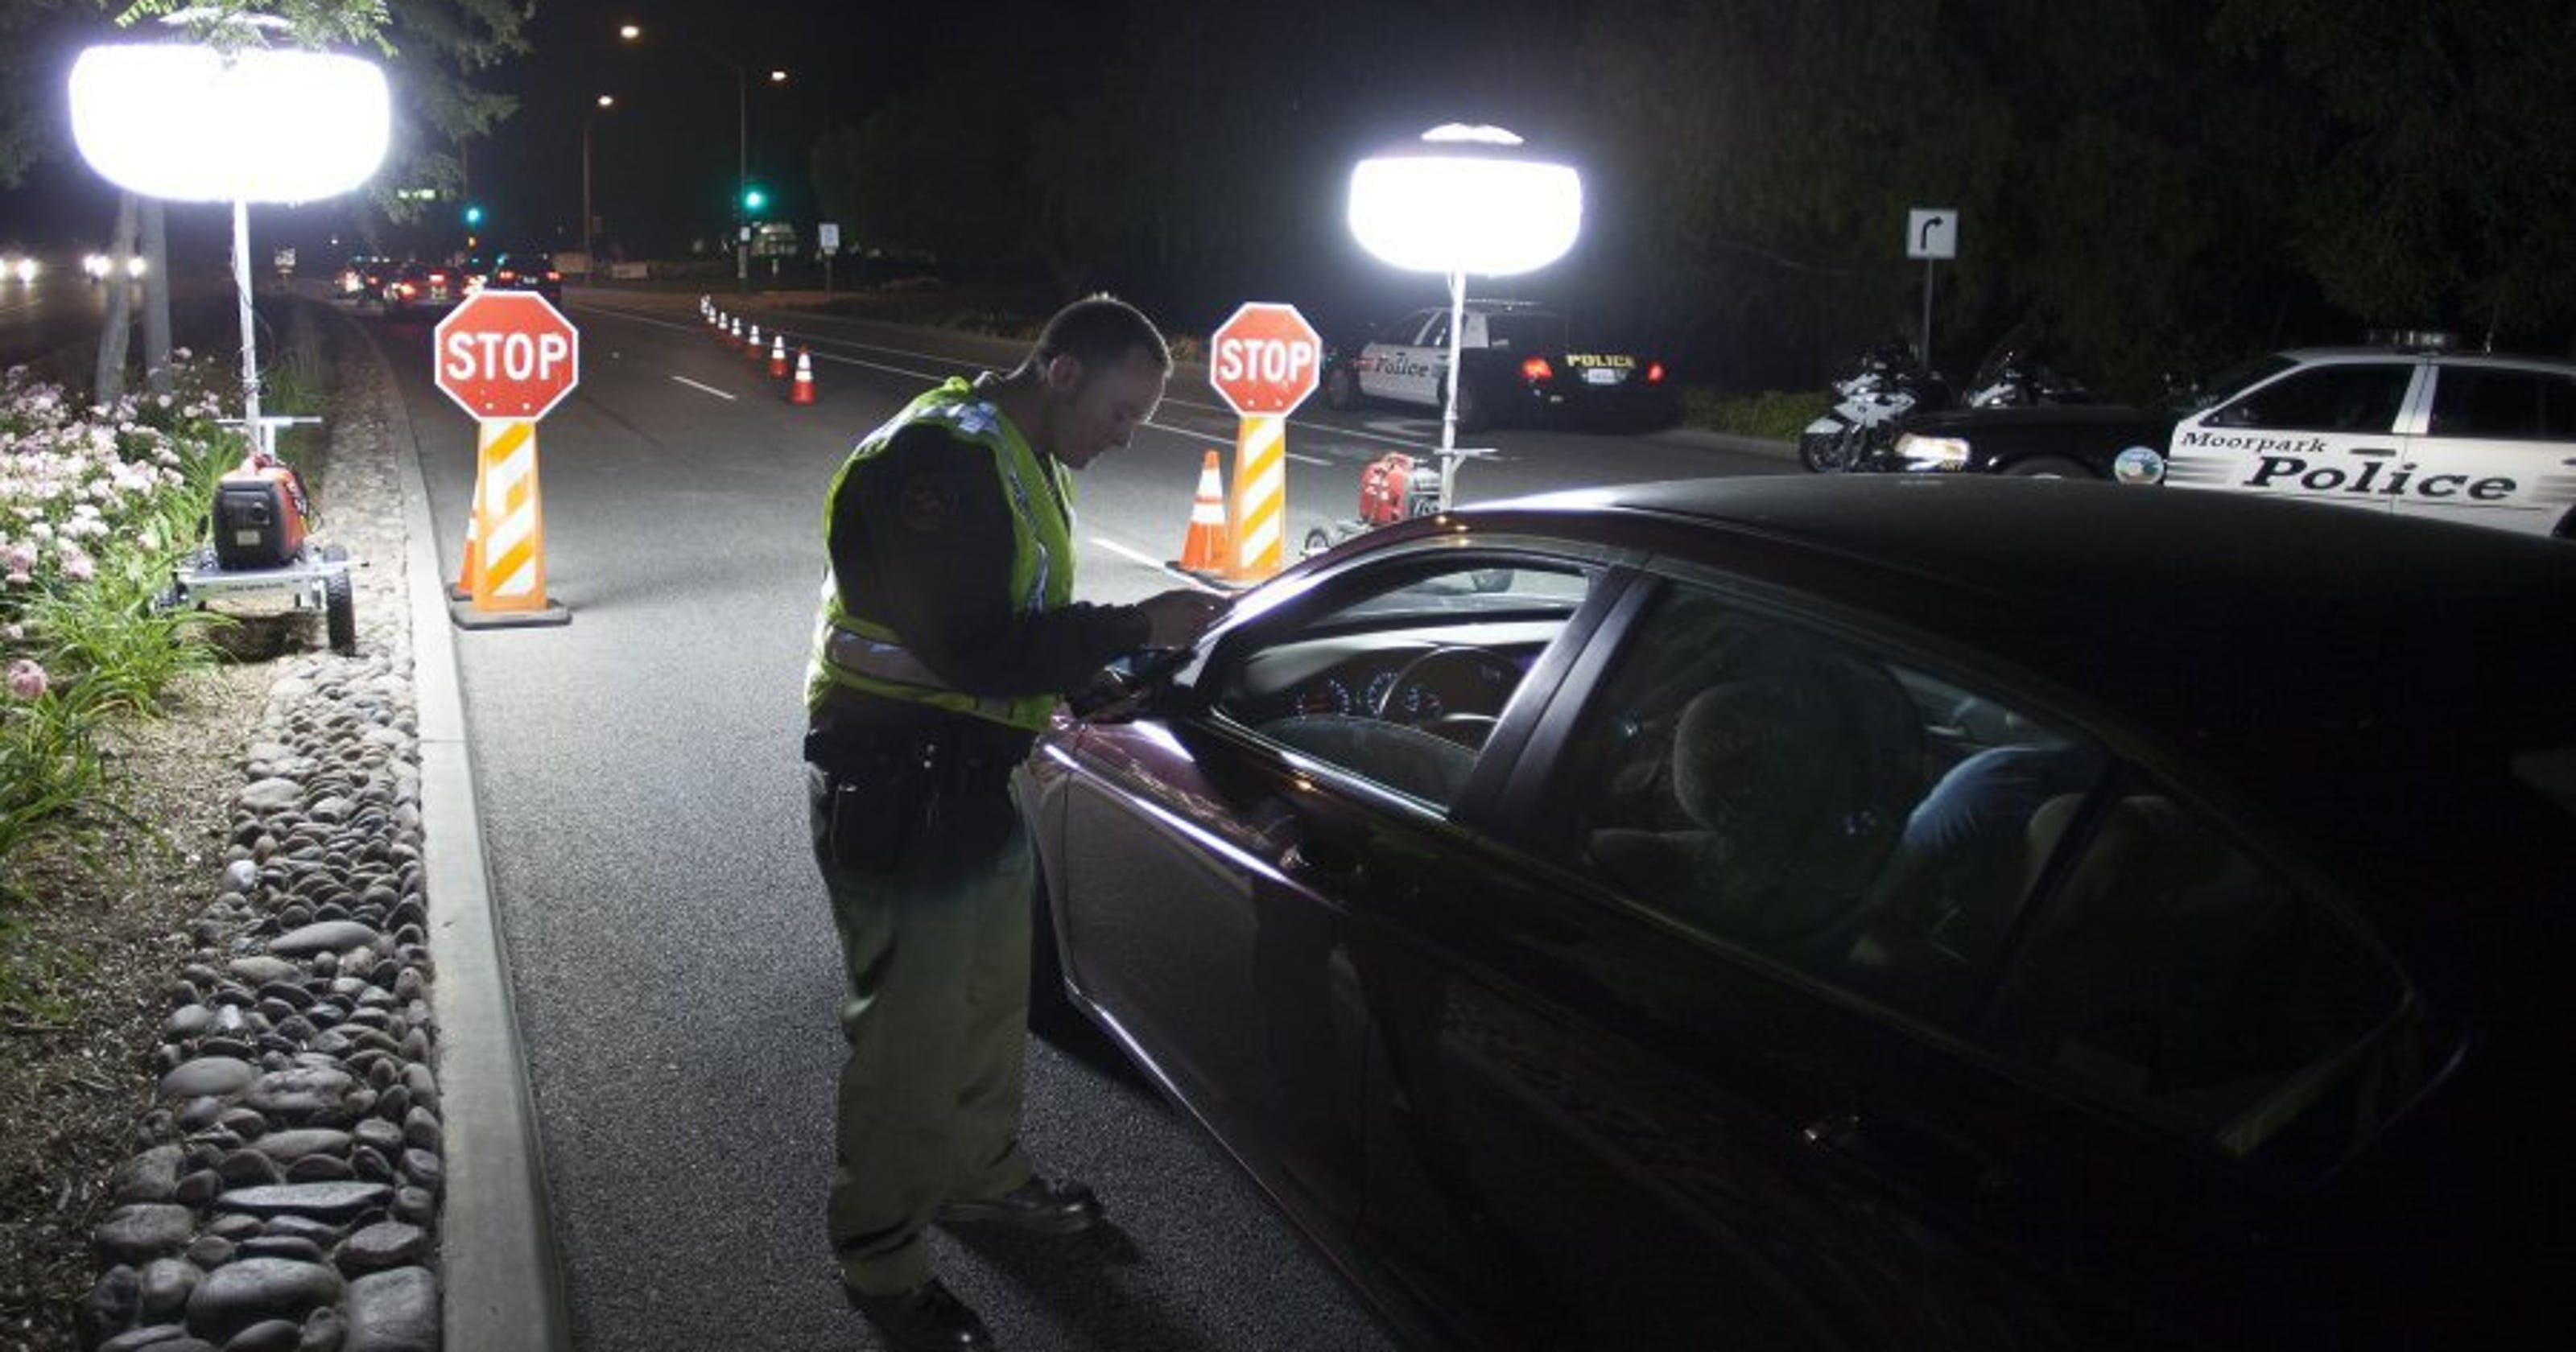 DUI checkpoint in Thousand Oaks